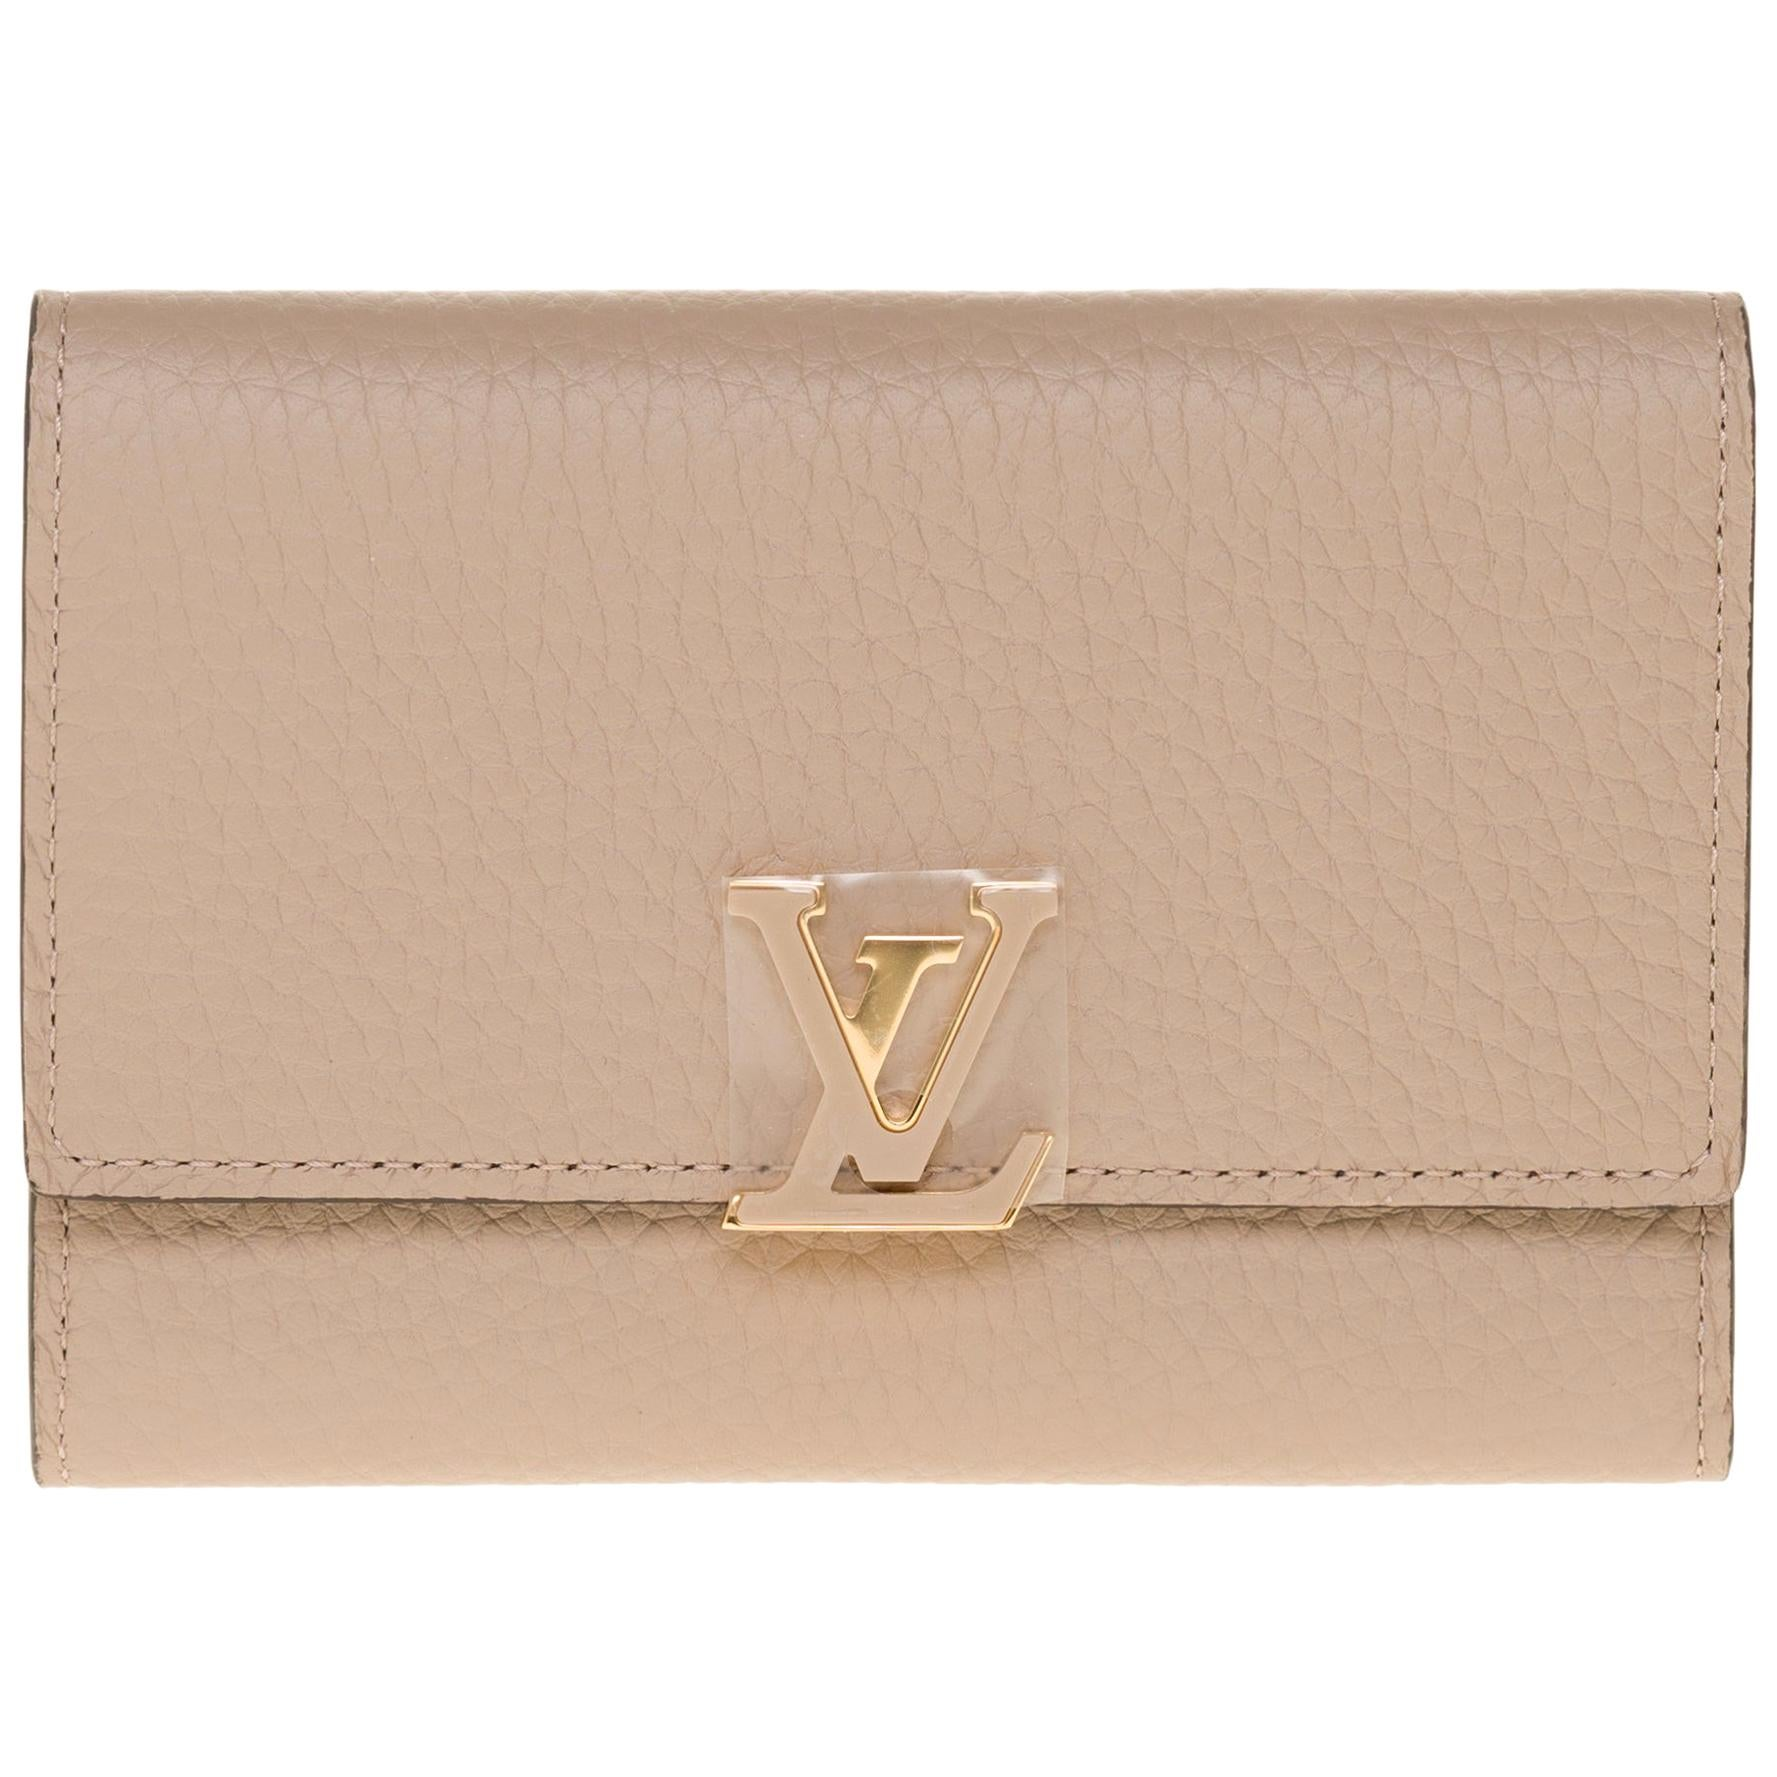 Brand New Louis Vuitton Capucines Compact Wallet in Galet Taurillon leather